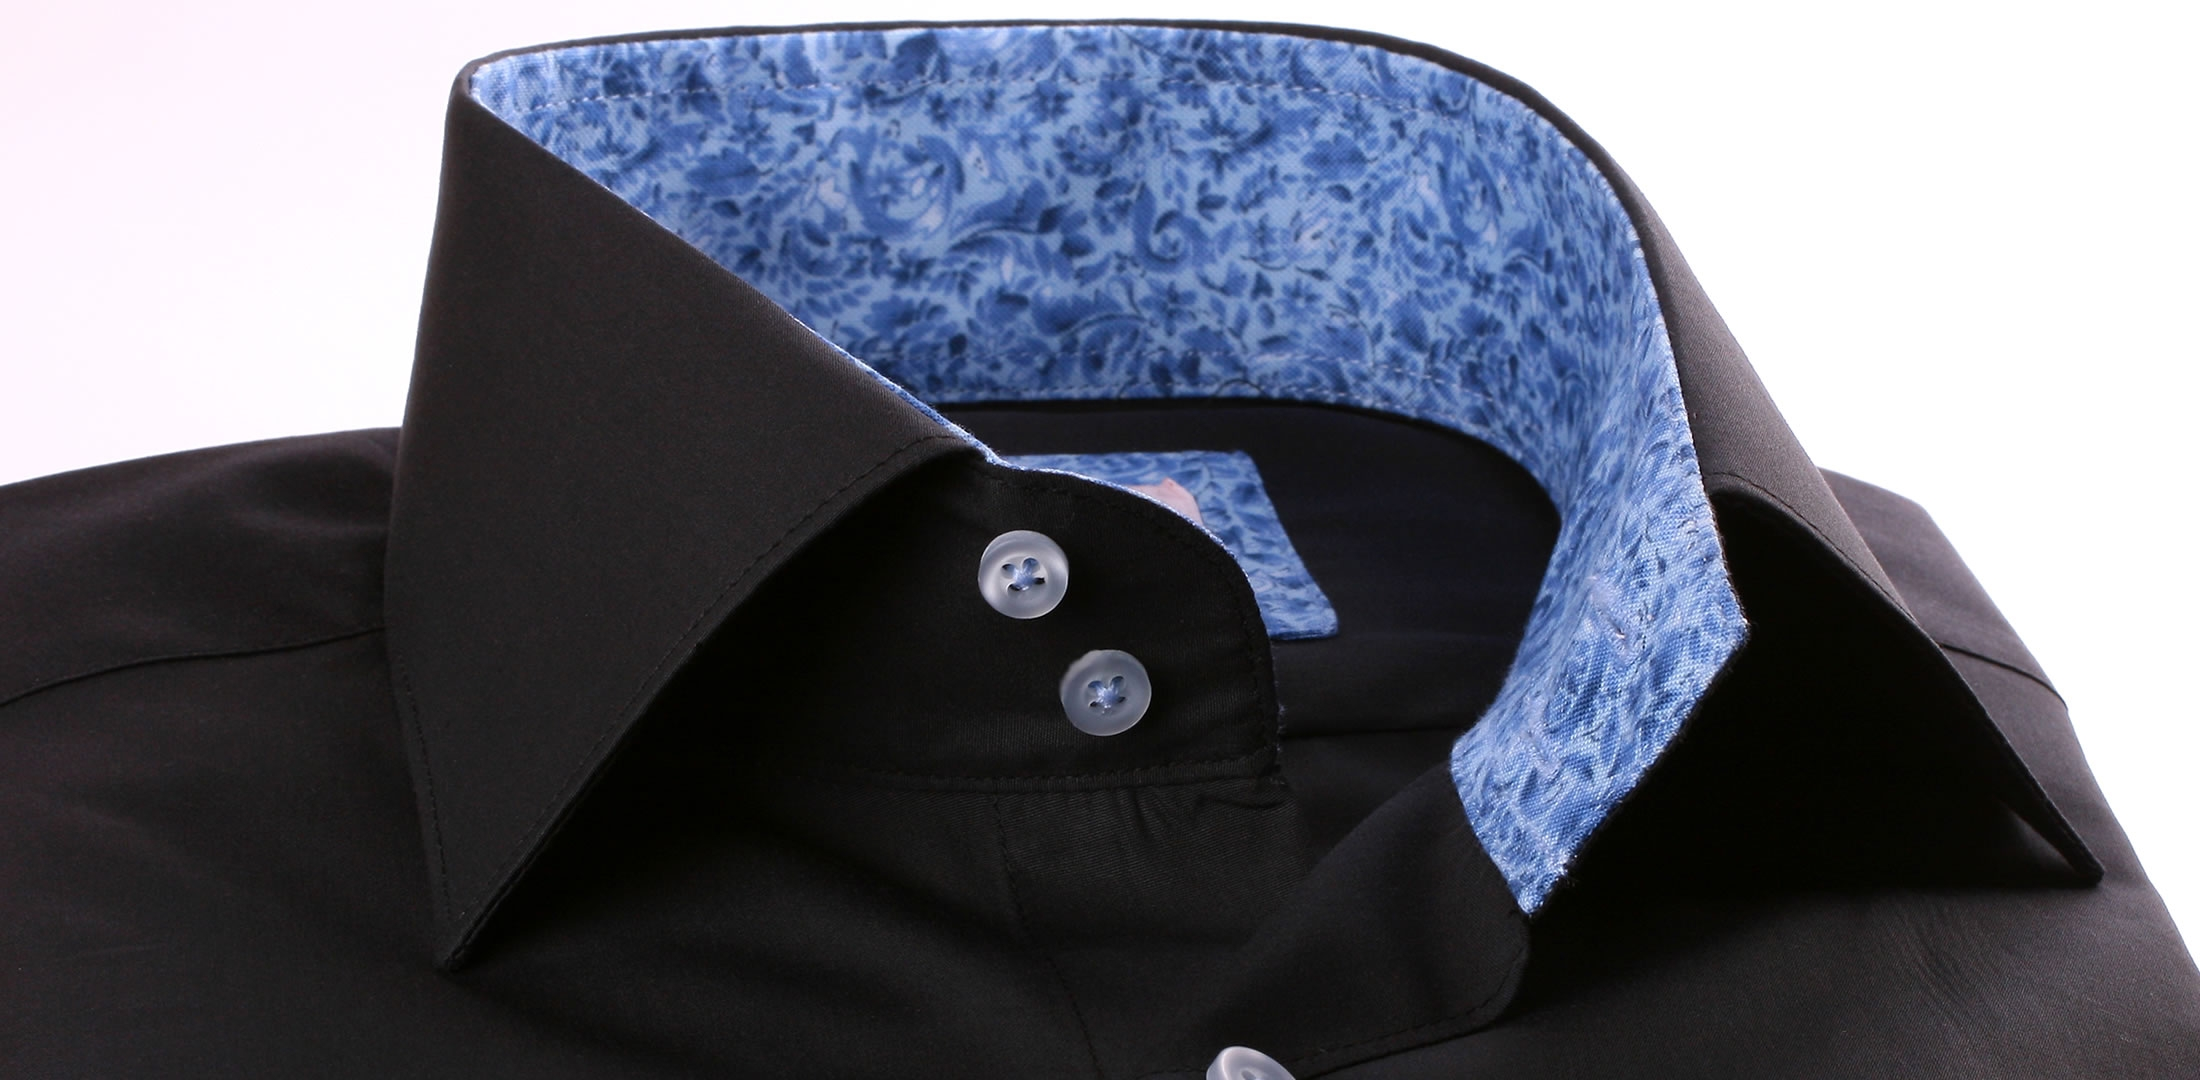 Black french cuff shirt with blue pattern collar and cuffs